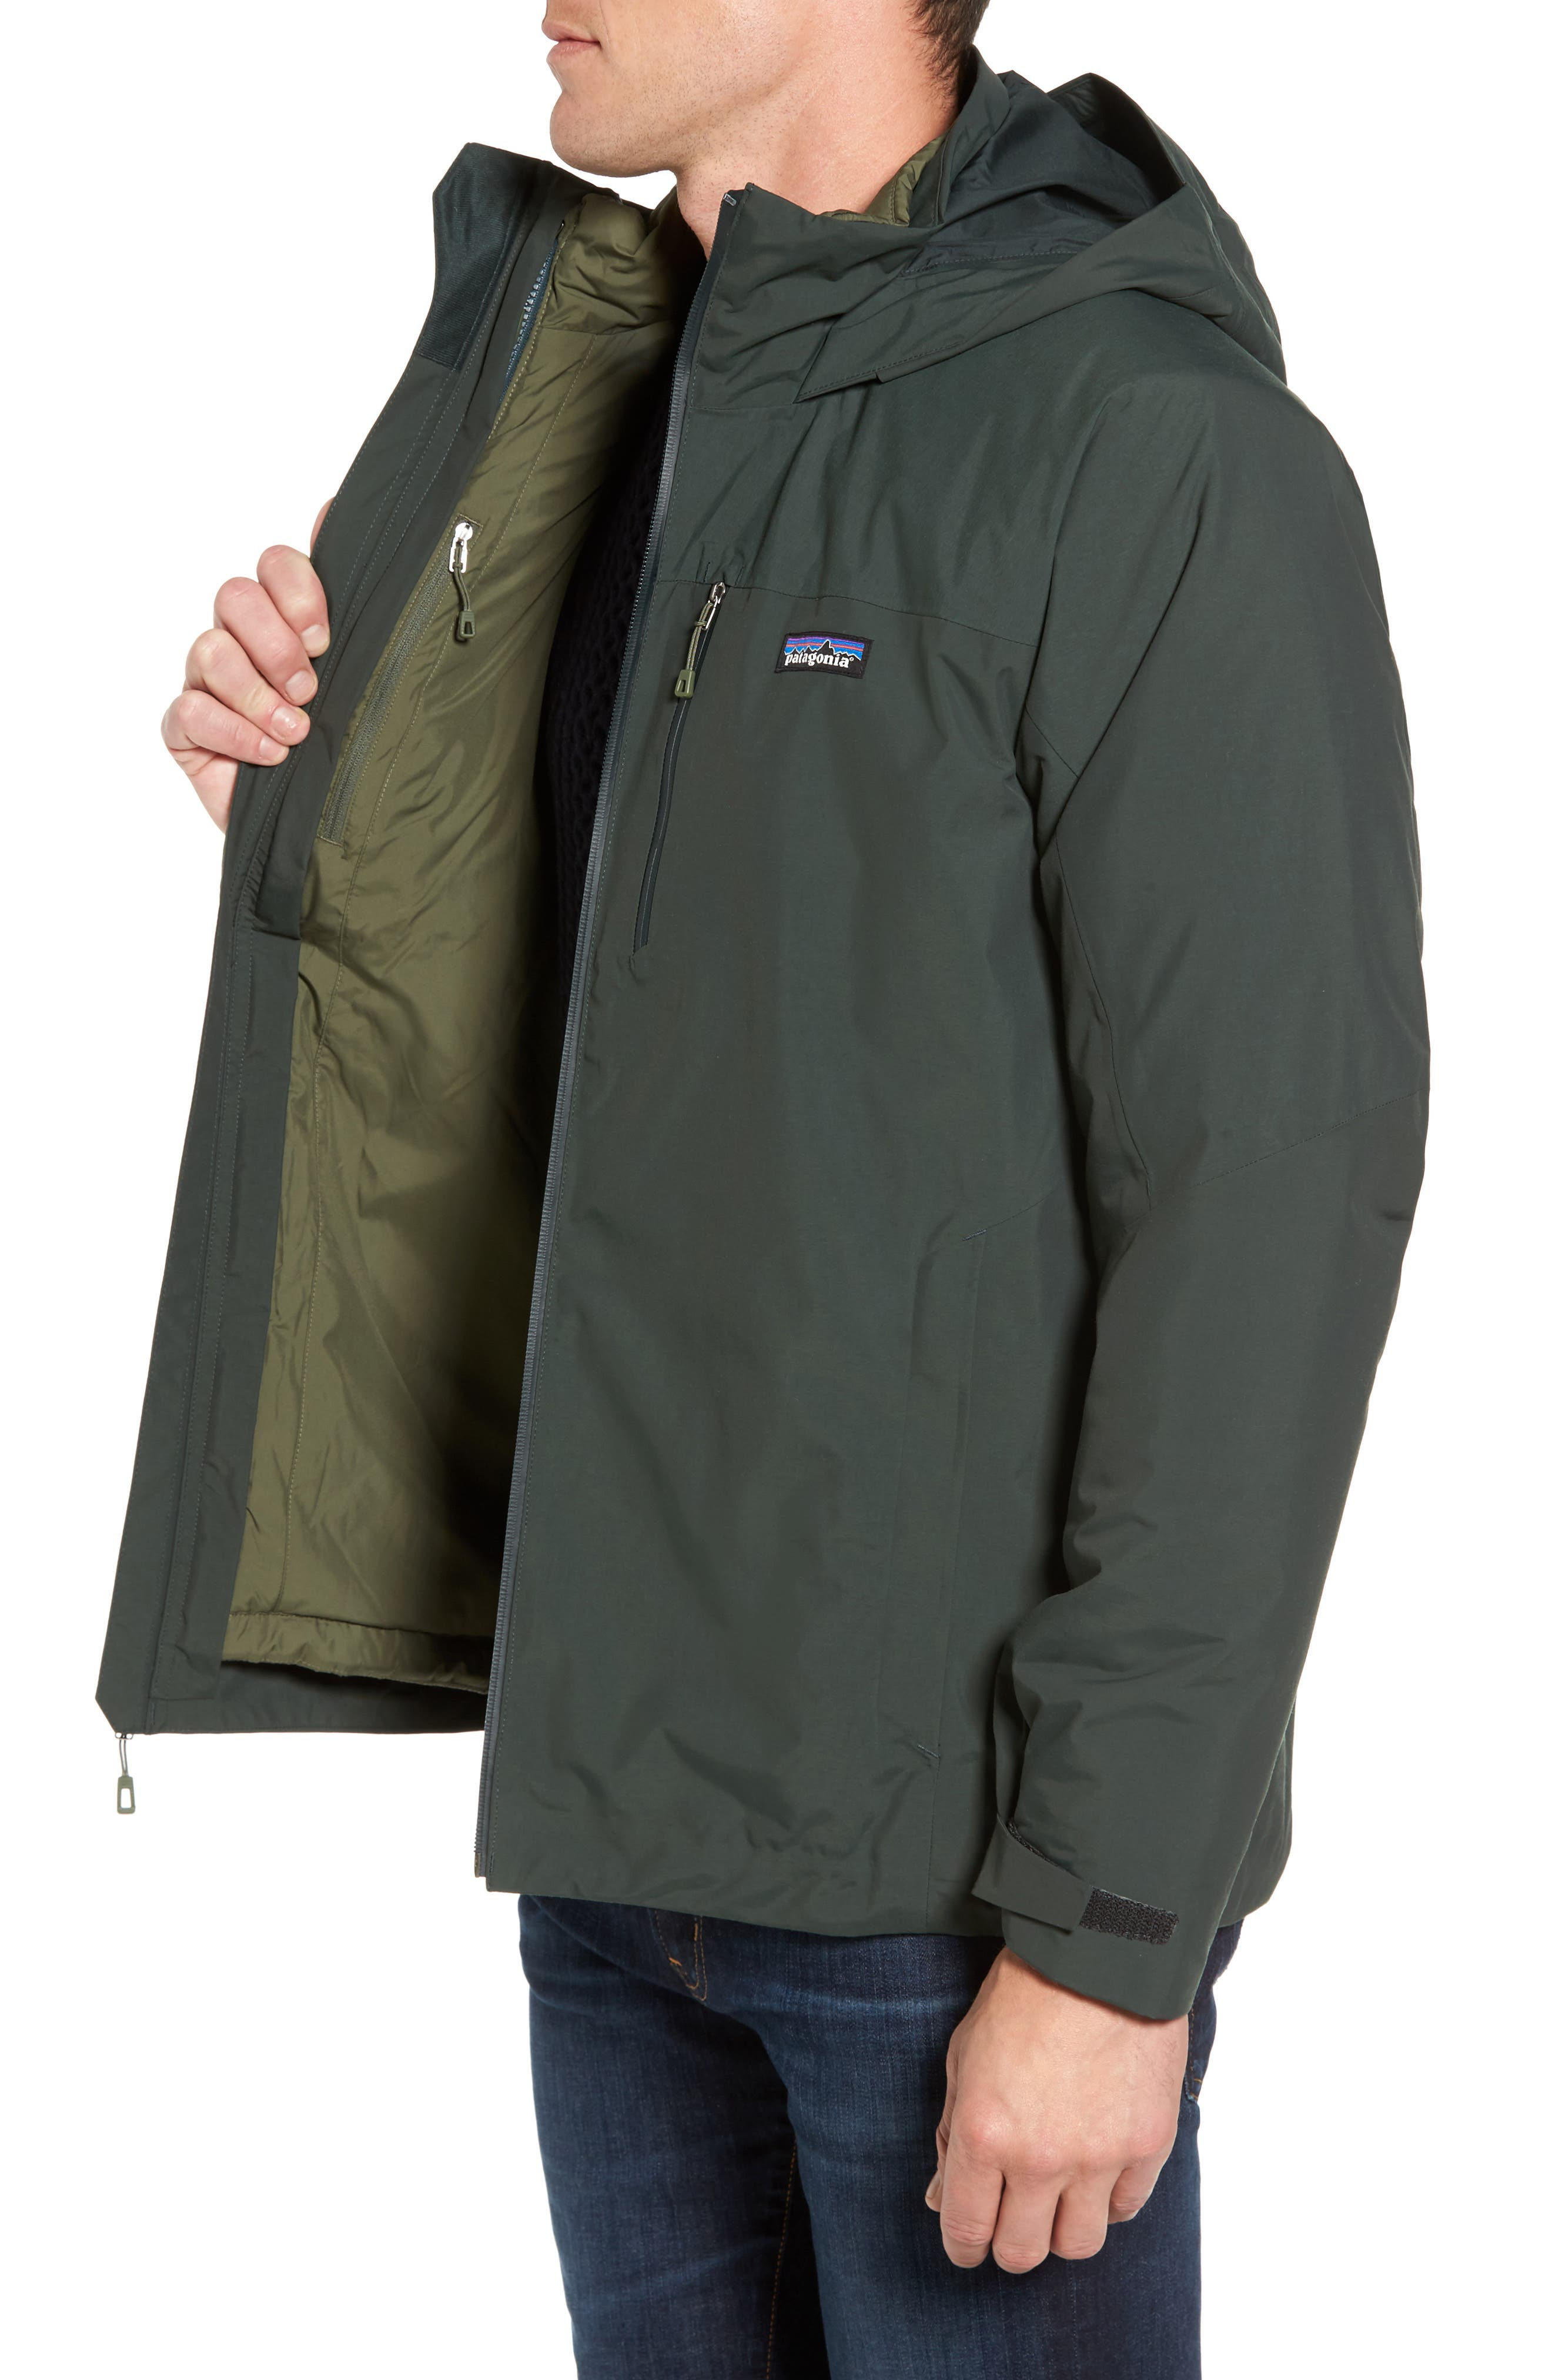 Windsweep 3-in-1 Jacket,                             Alternate thumbnail 3, color,                             002